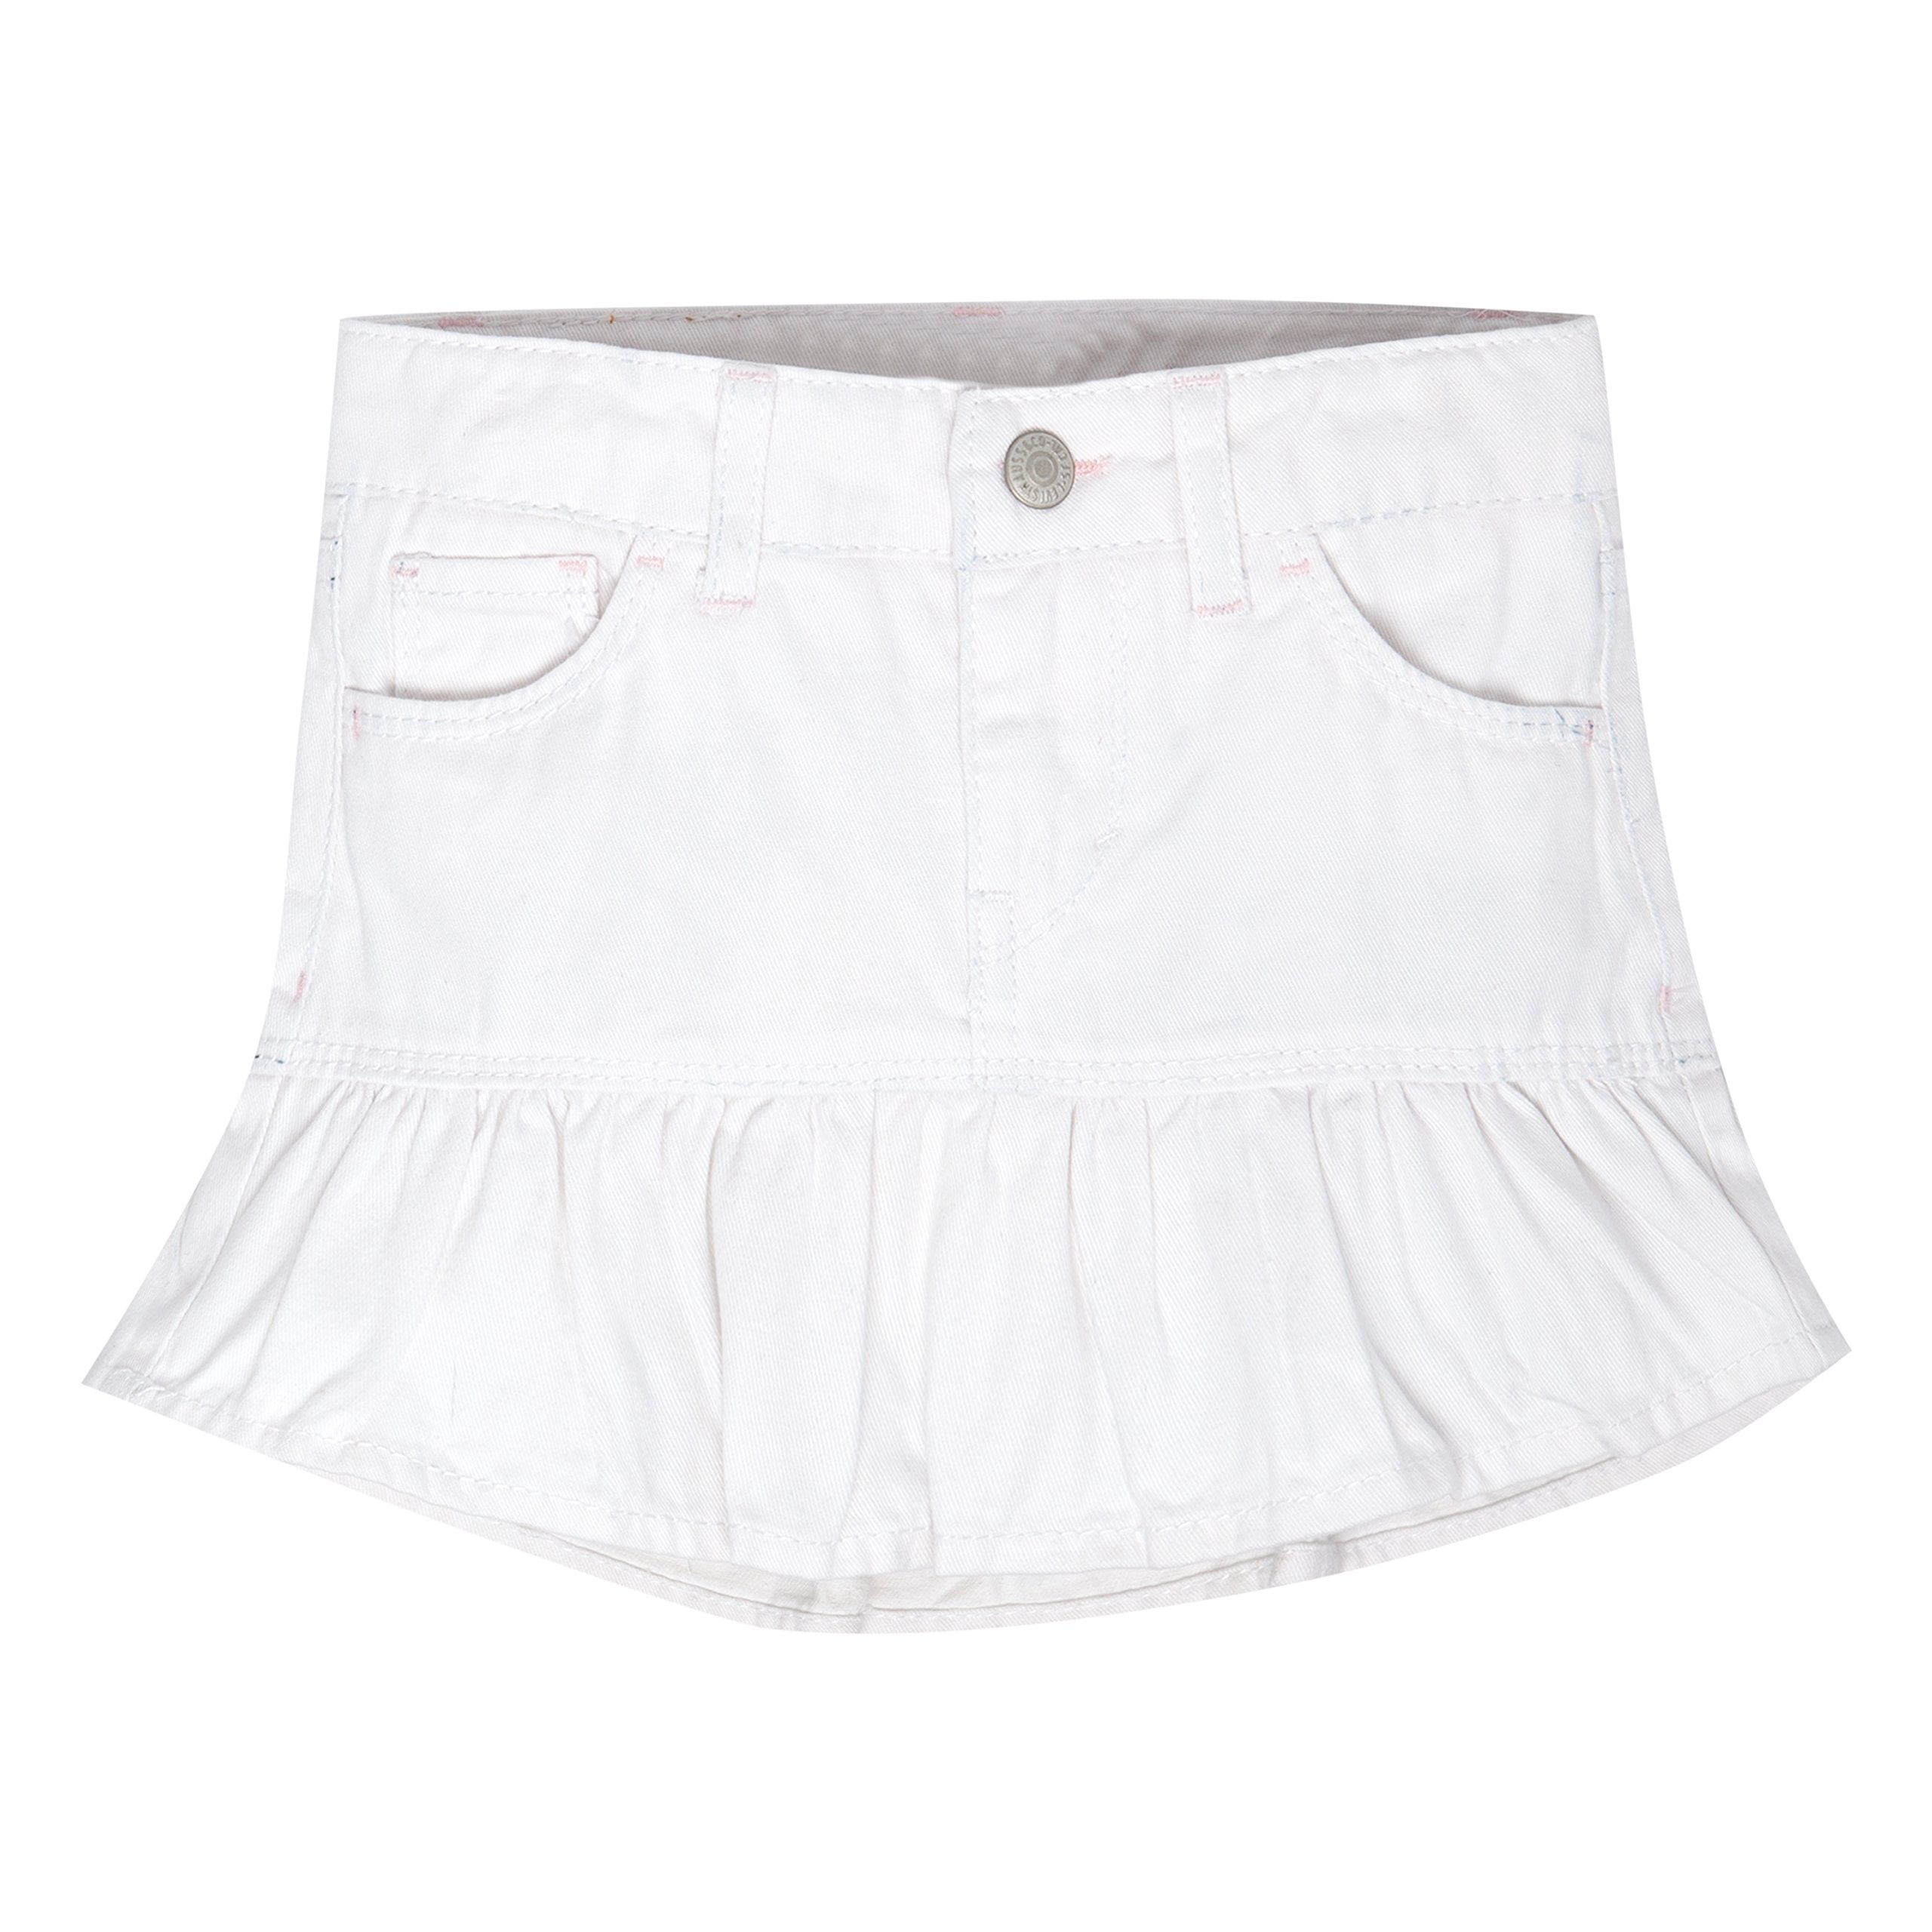 Levi's Girls' Alessandra Scooter Skirt,White, 2T by Levi's